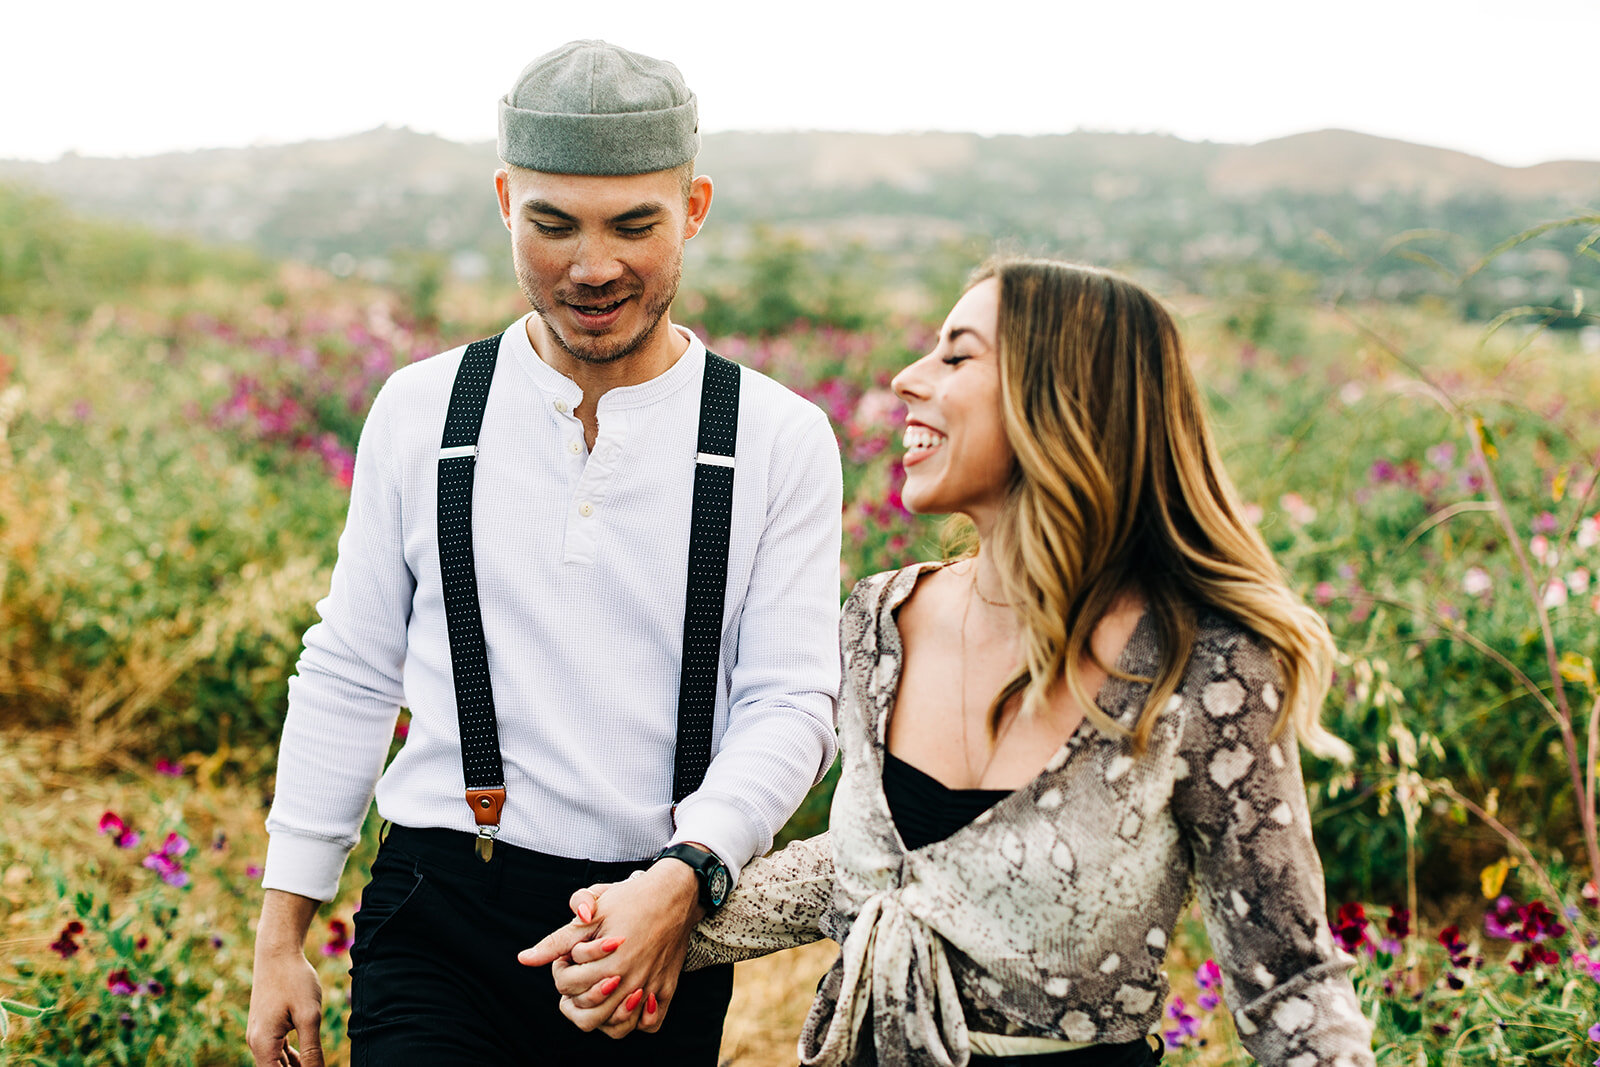 Southern California Wedding Photographer & Videographer | Engagement Photos in the Sweet Pea Flower Fields in Orange County, CA | www.clarisserae.com